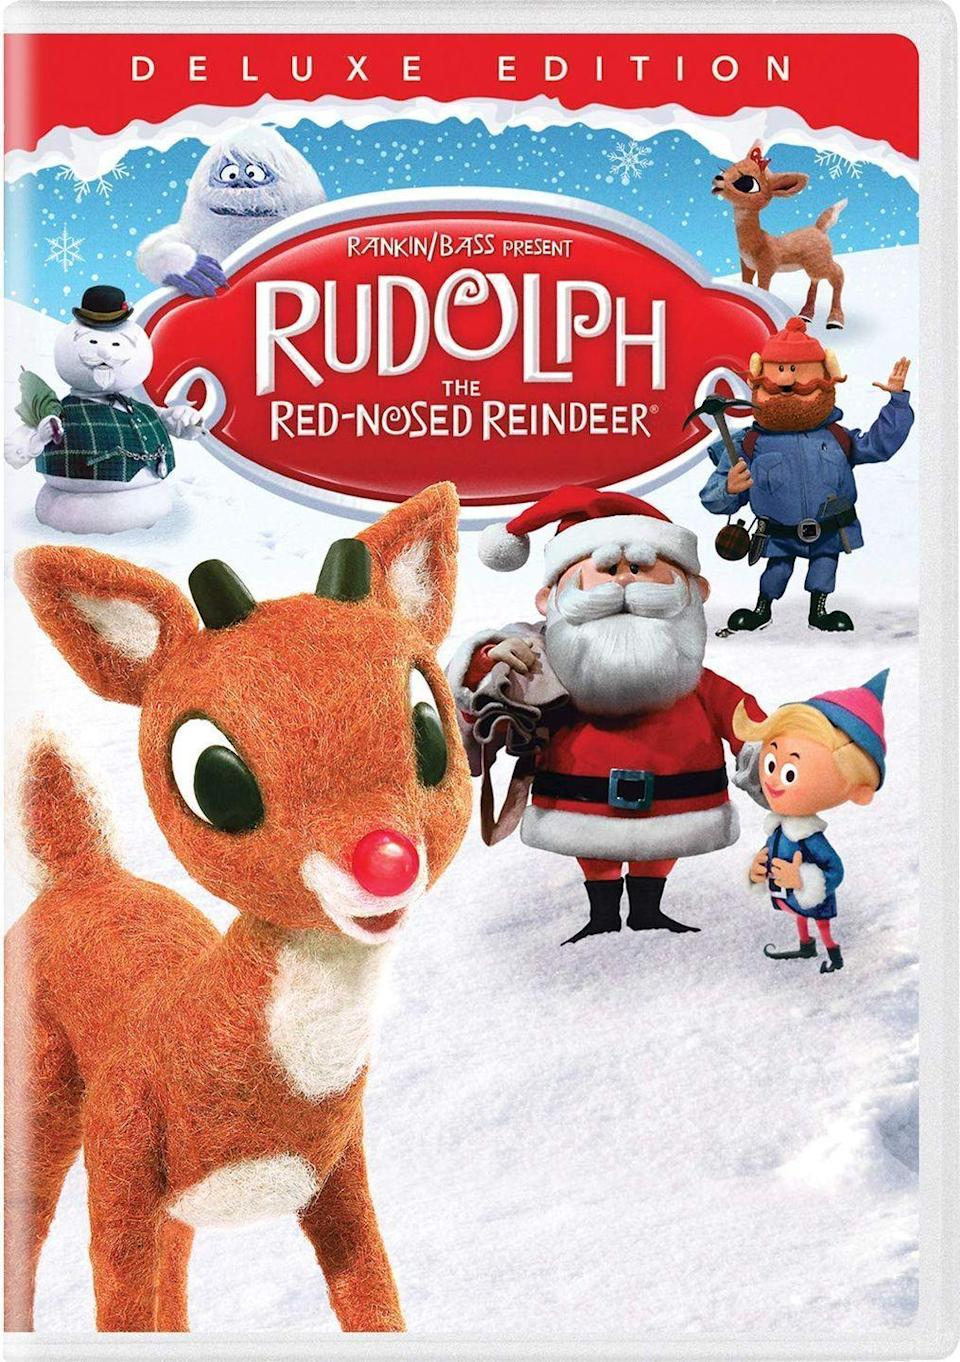 """<p>Although this Rankin/Bass stop-motion animated film is technically just a TV special, it's such a classic that it's been aired every single year since it debuted in 1964.</p><p><a class=""""link rapid-noclick-resp"""" href=""""https://www.amazon.com/Rudolph-Red-Nosed-Reindeer-Blu-ray-Burl/dp/B07GQRSRL3/?tag=syn-yahoo-20&ascsubtag=%5Bartid%7C10055.g.1315%5Bsrc%7Cyahoo-us"""" rel=""""nofollow noopener"""" target=""""_blank"""" data-ylk=""""slk:WATCH NOW"""">WATCH NOW</a></p>"""